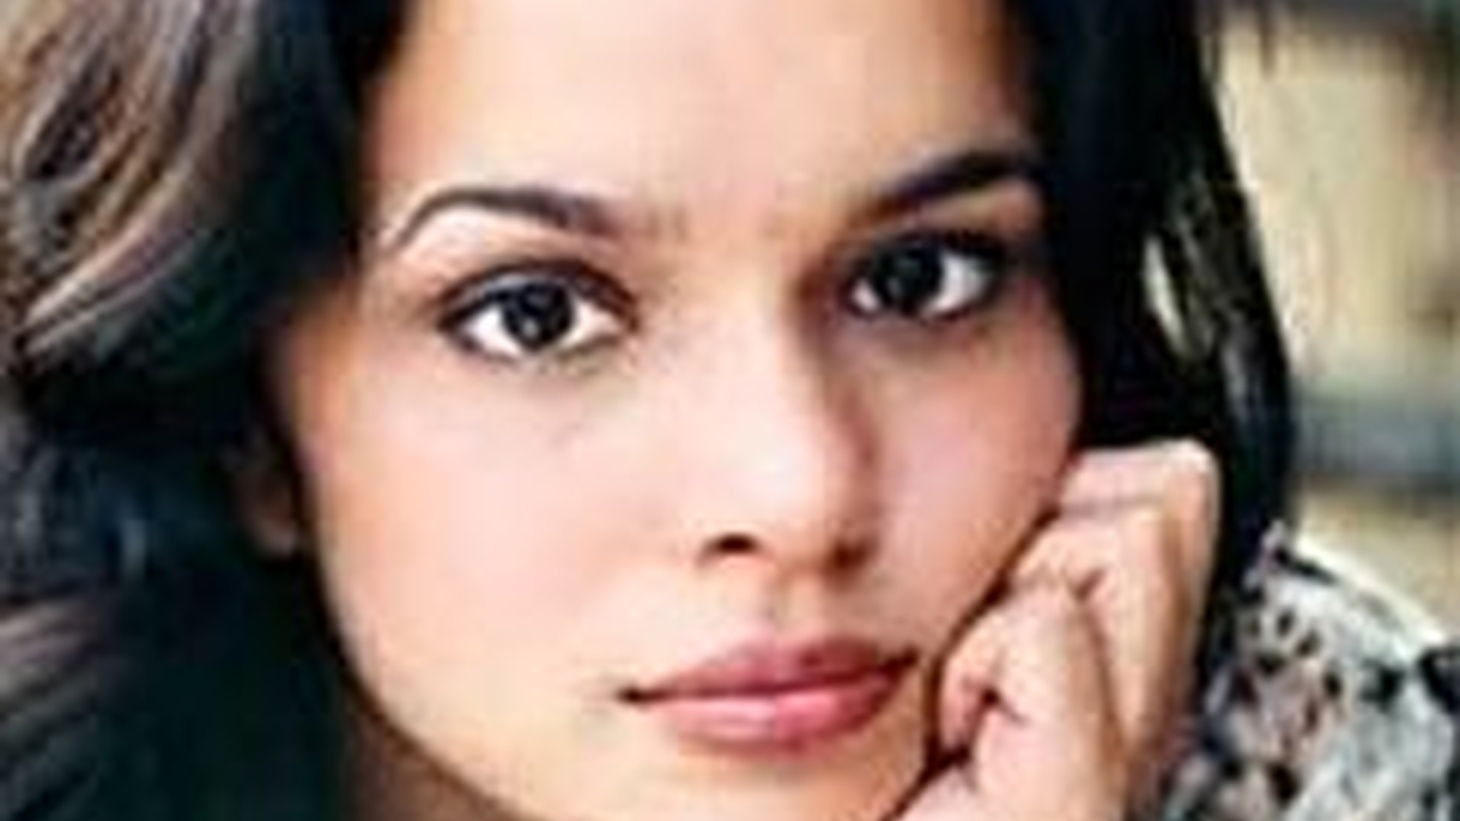 Singer Norah Jones returns with her band to perform songs from her new release, Not Too Late, on Morning Becomes Eclectic at 11:15am.